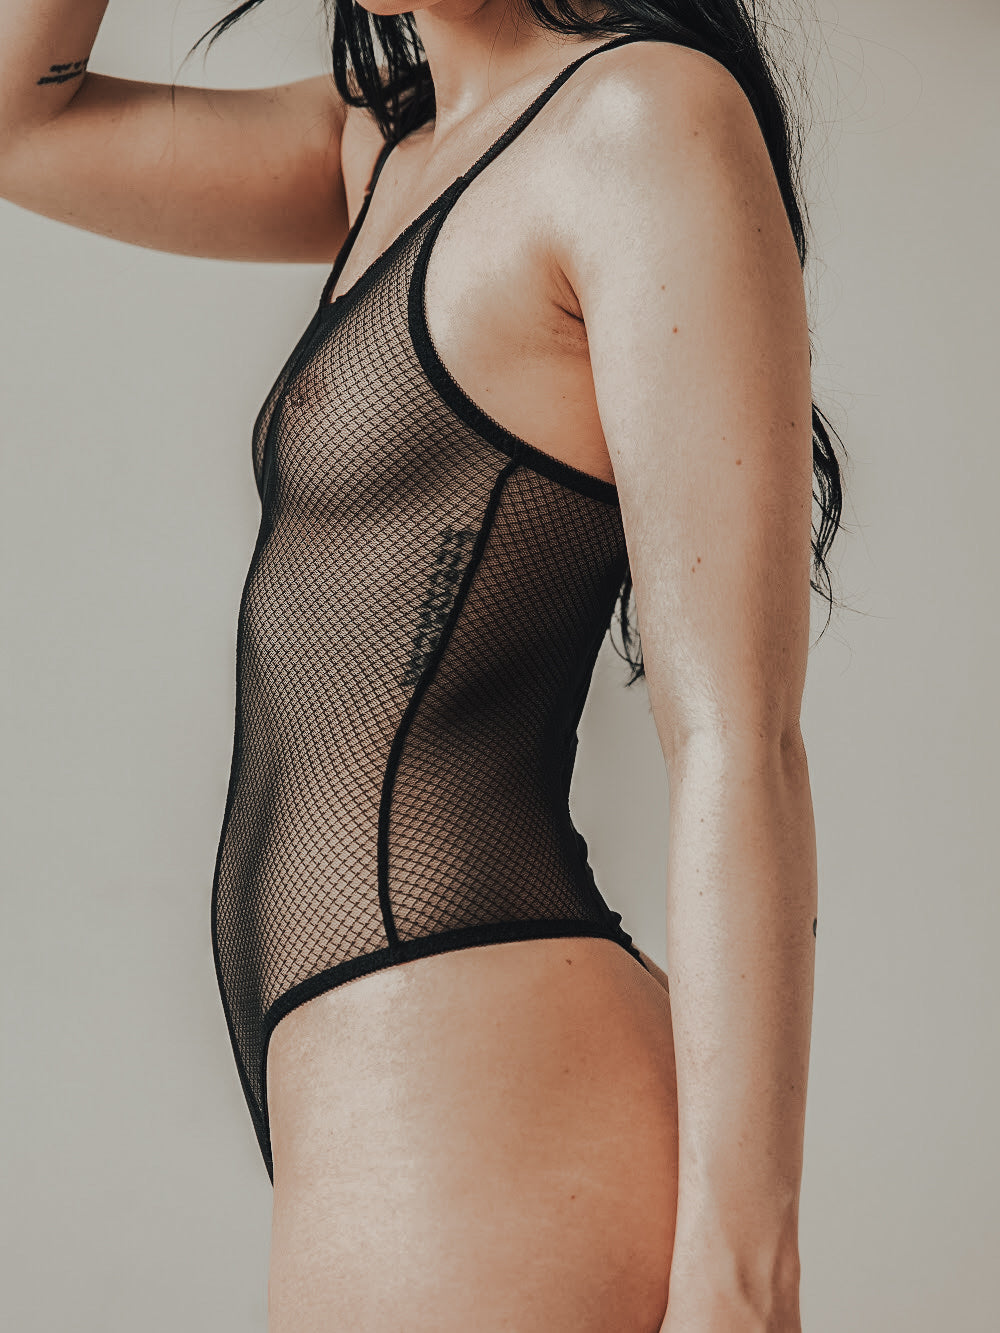 Element Black Bodysuit by Blush lingerie